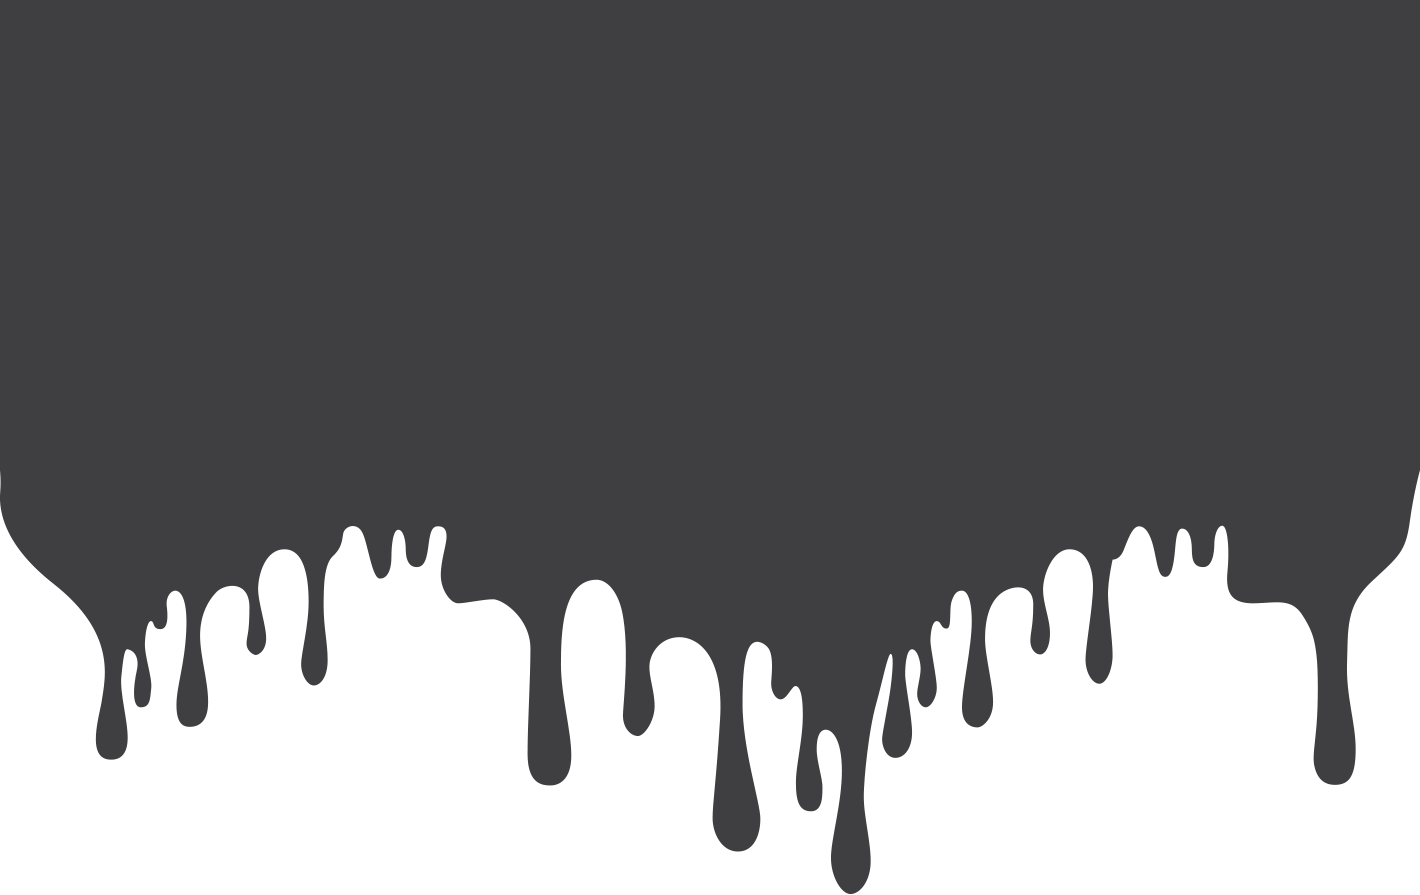 View And Download Hd Brush Image Related Wallpapers Black Paint Drips Png Png Image For Free The Image Resolution Is 1420 Drip Painting Black Paint Painting